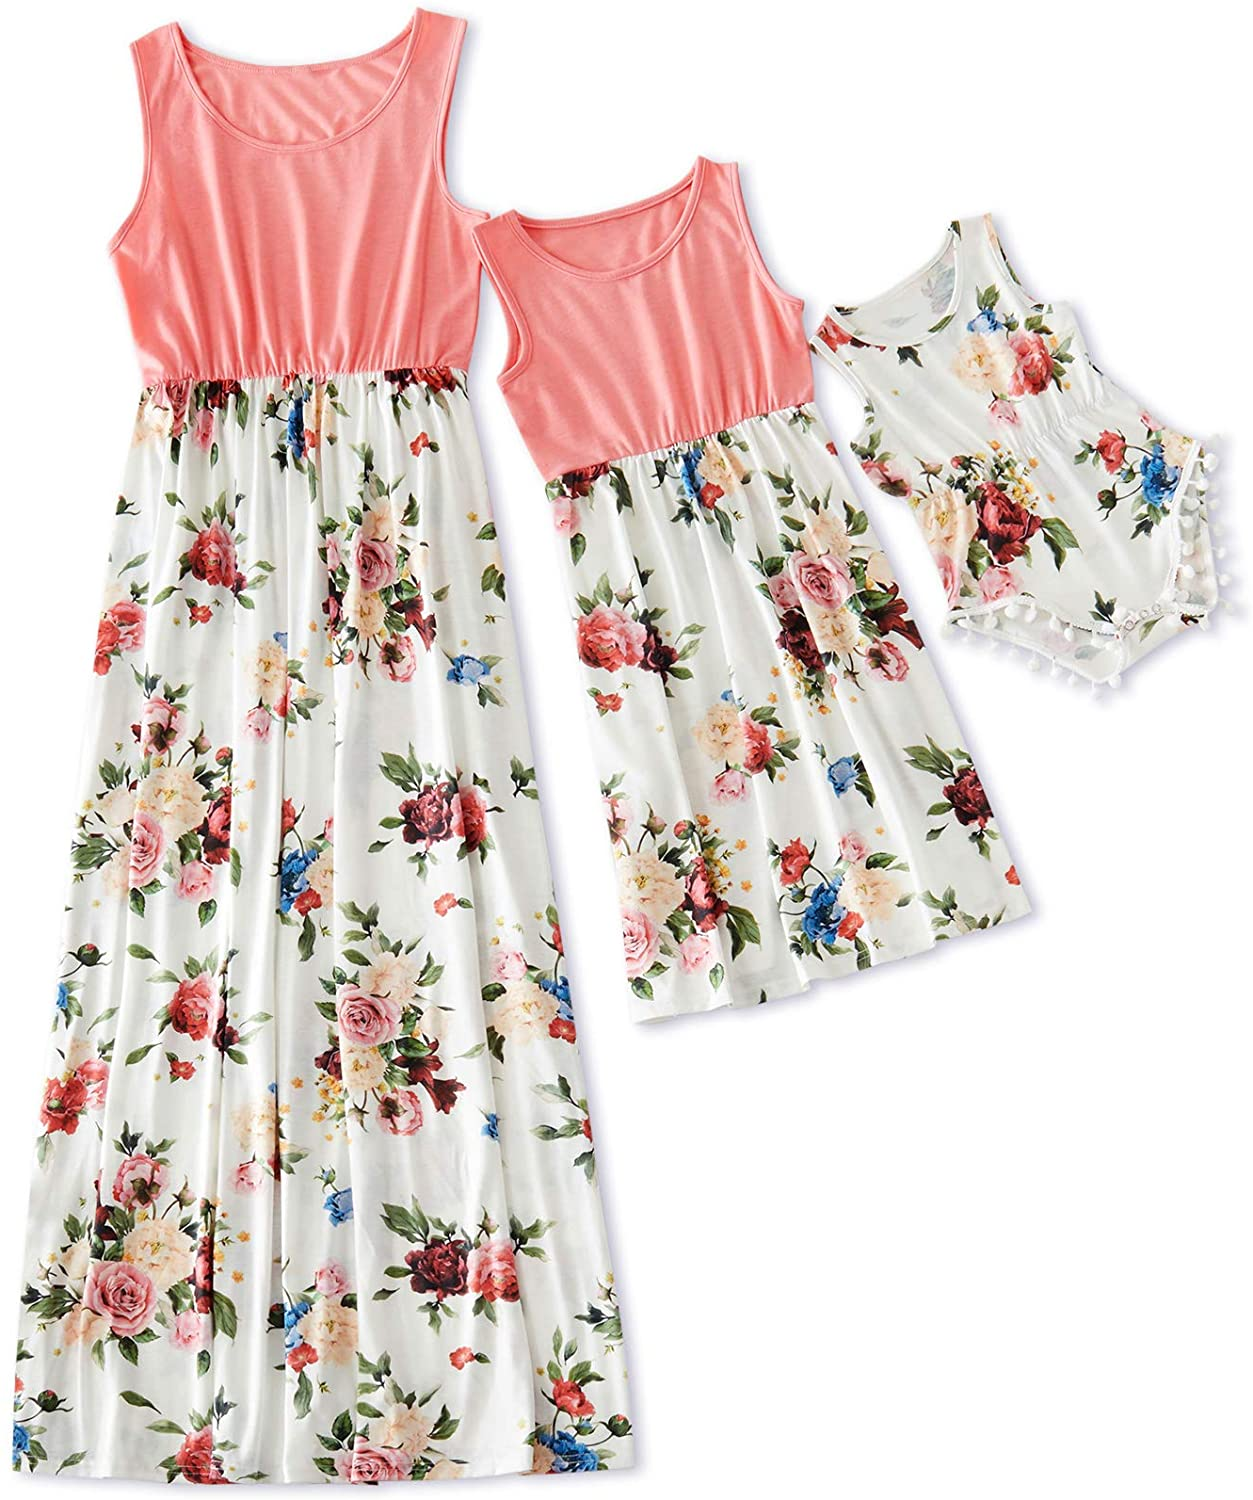 IFFEI Mommy and Me Dress Matching Outfits Floral Printed Sleeveless Tank Maxi Dress for Mother and Daughter